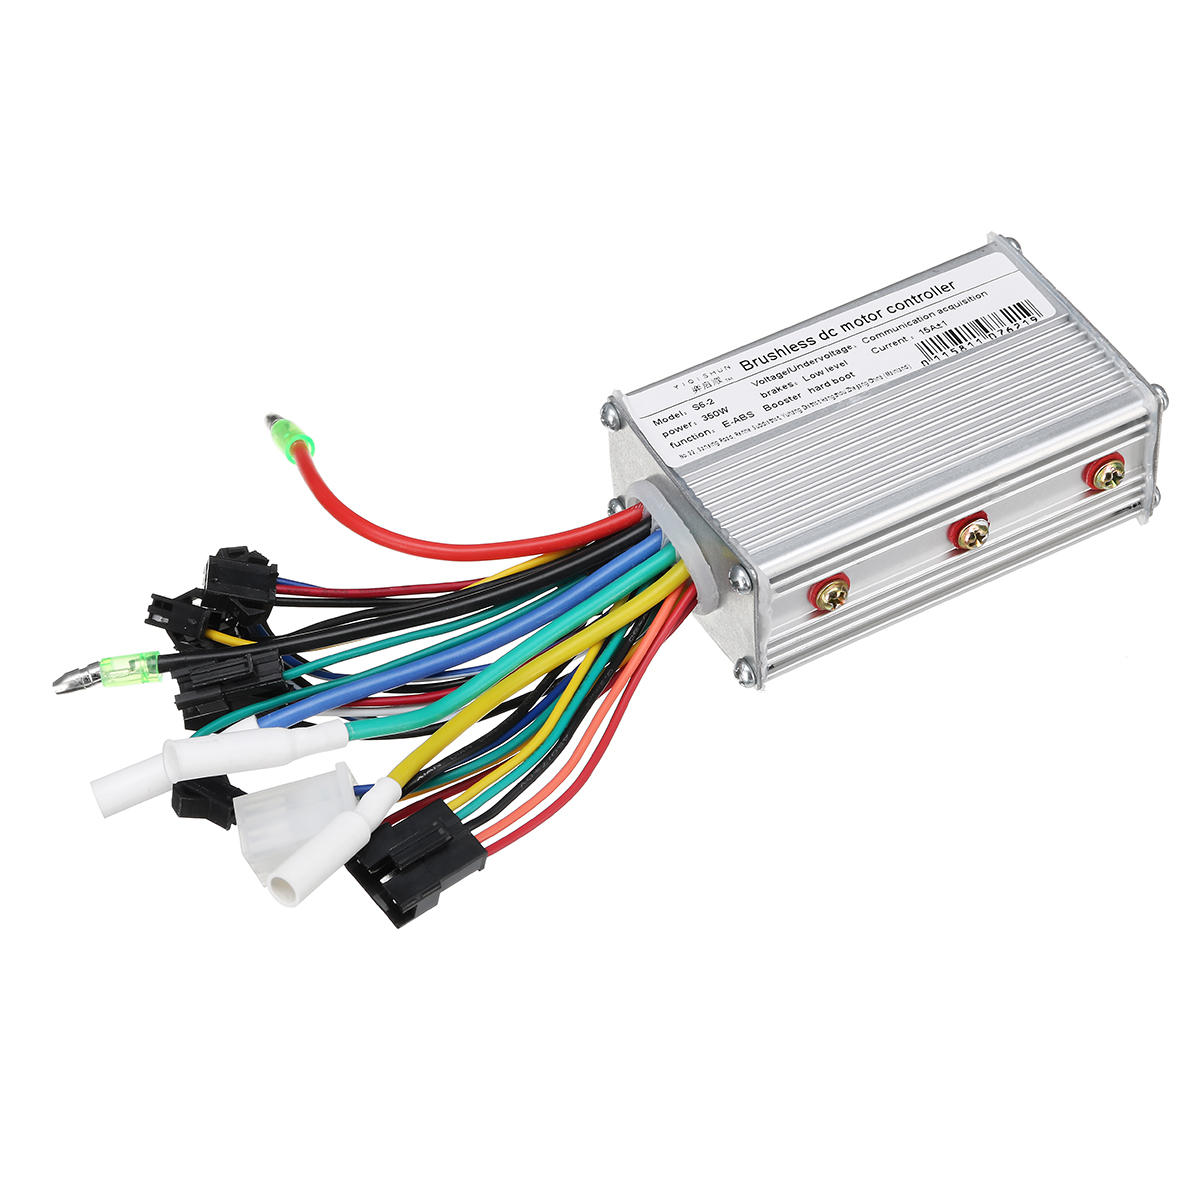 24v 48v 350w Brushless Motor Controller With Lcd Display For Scooter Wiring Diagram Bldc 600x600